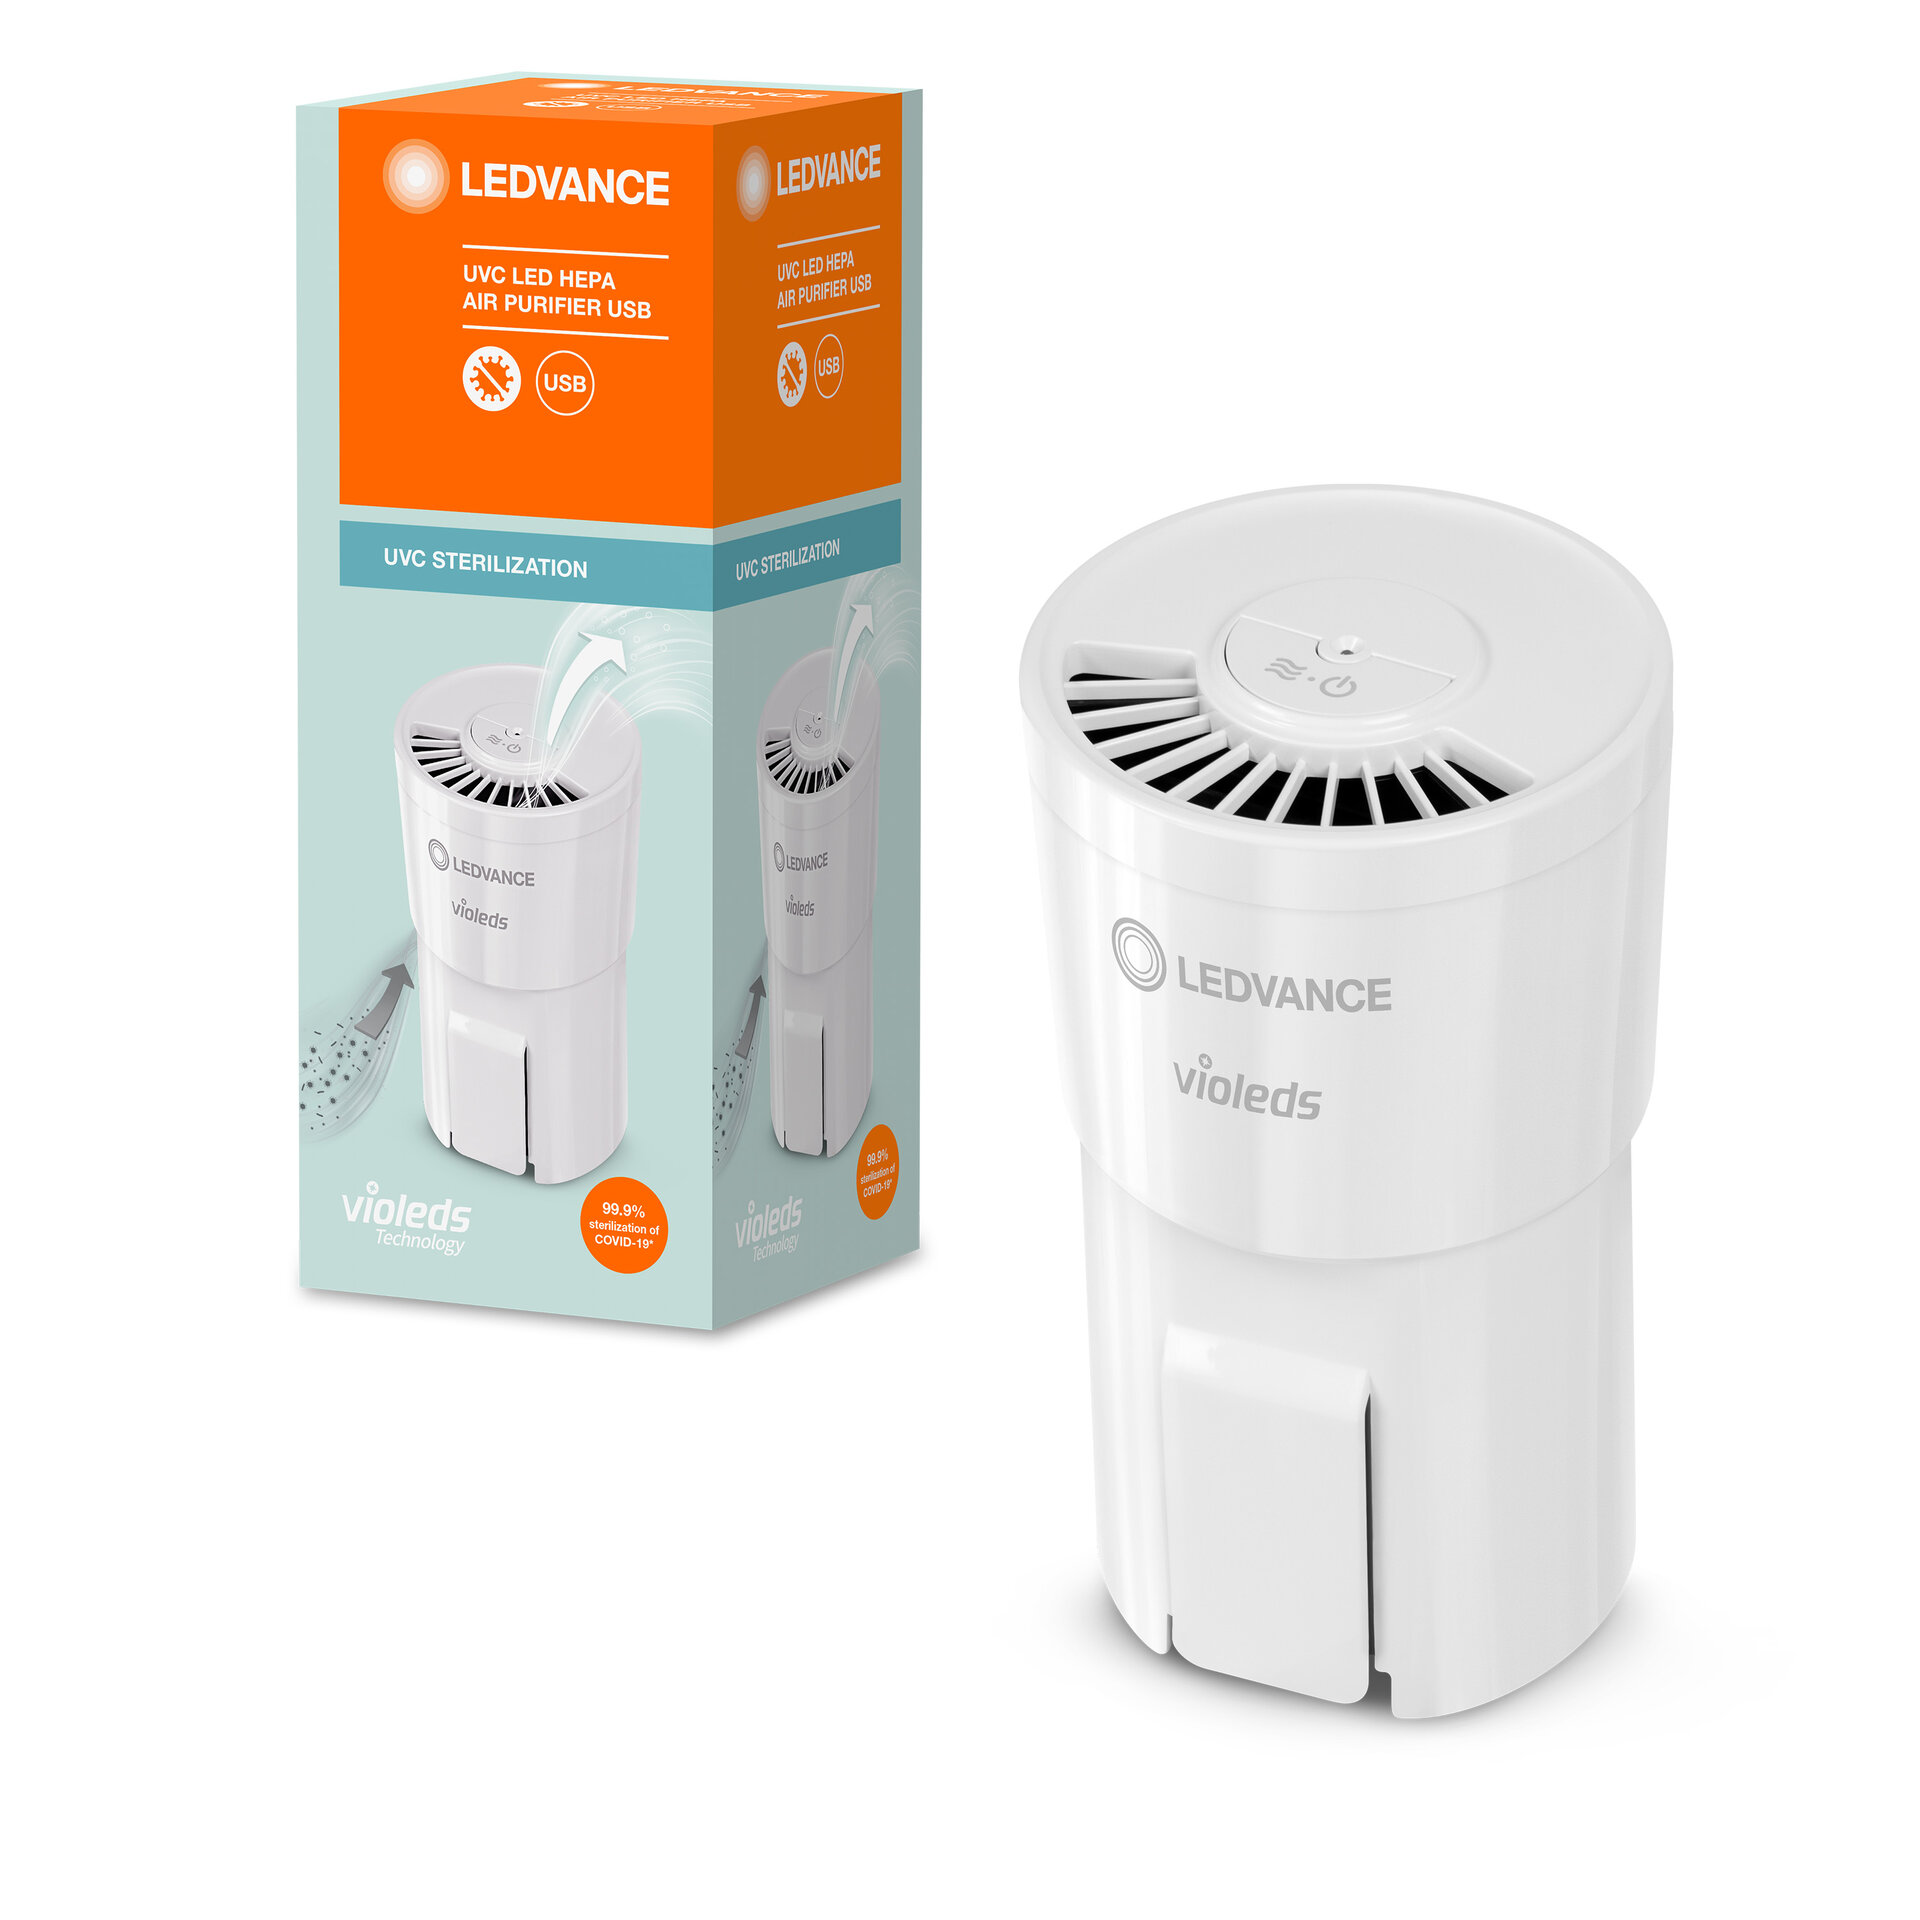 UV-C HEPA Air Purifier